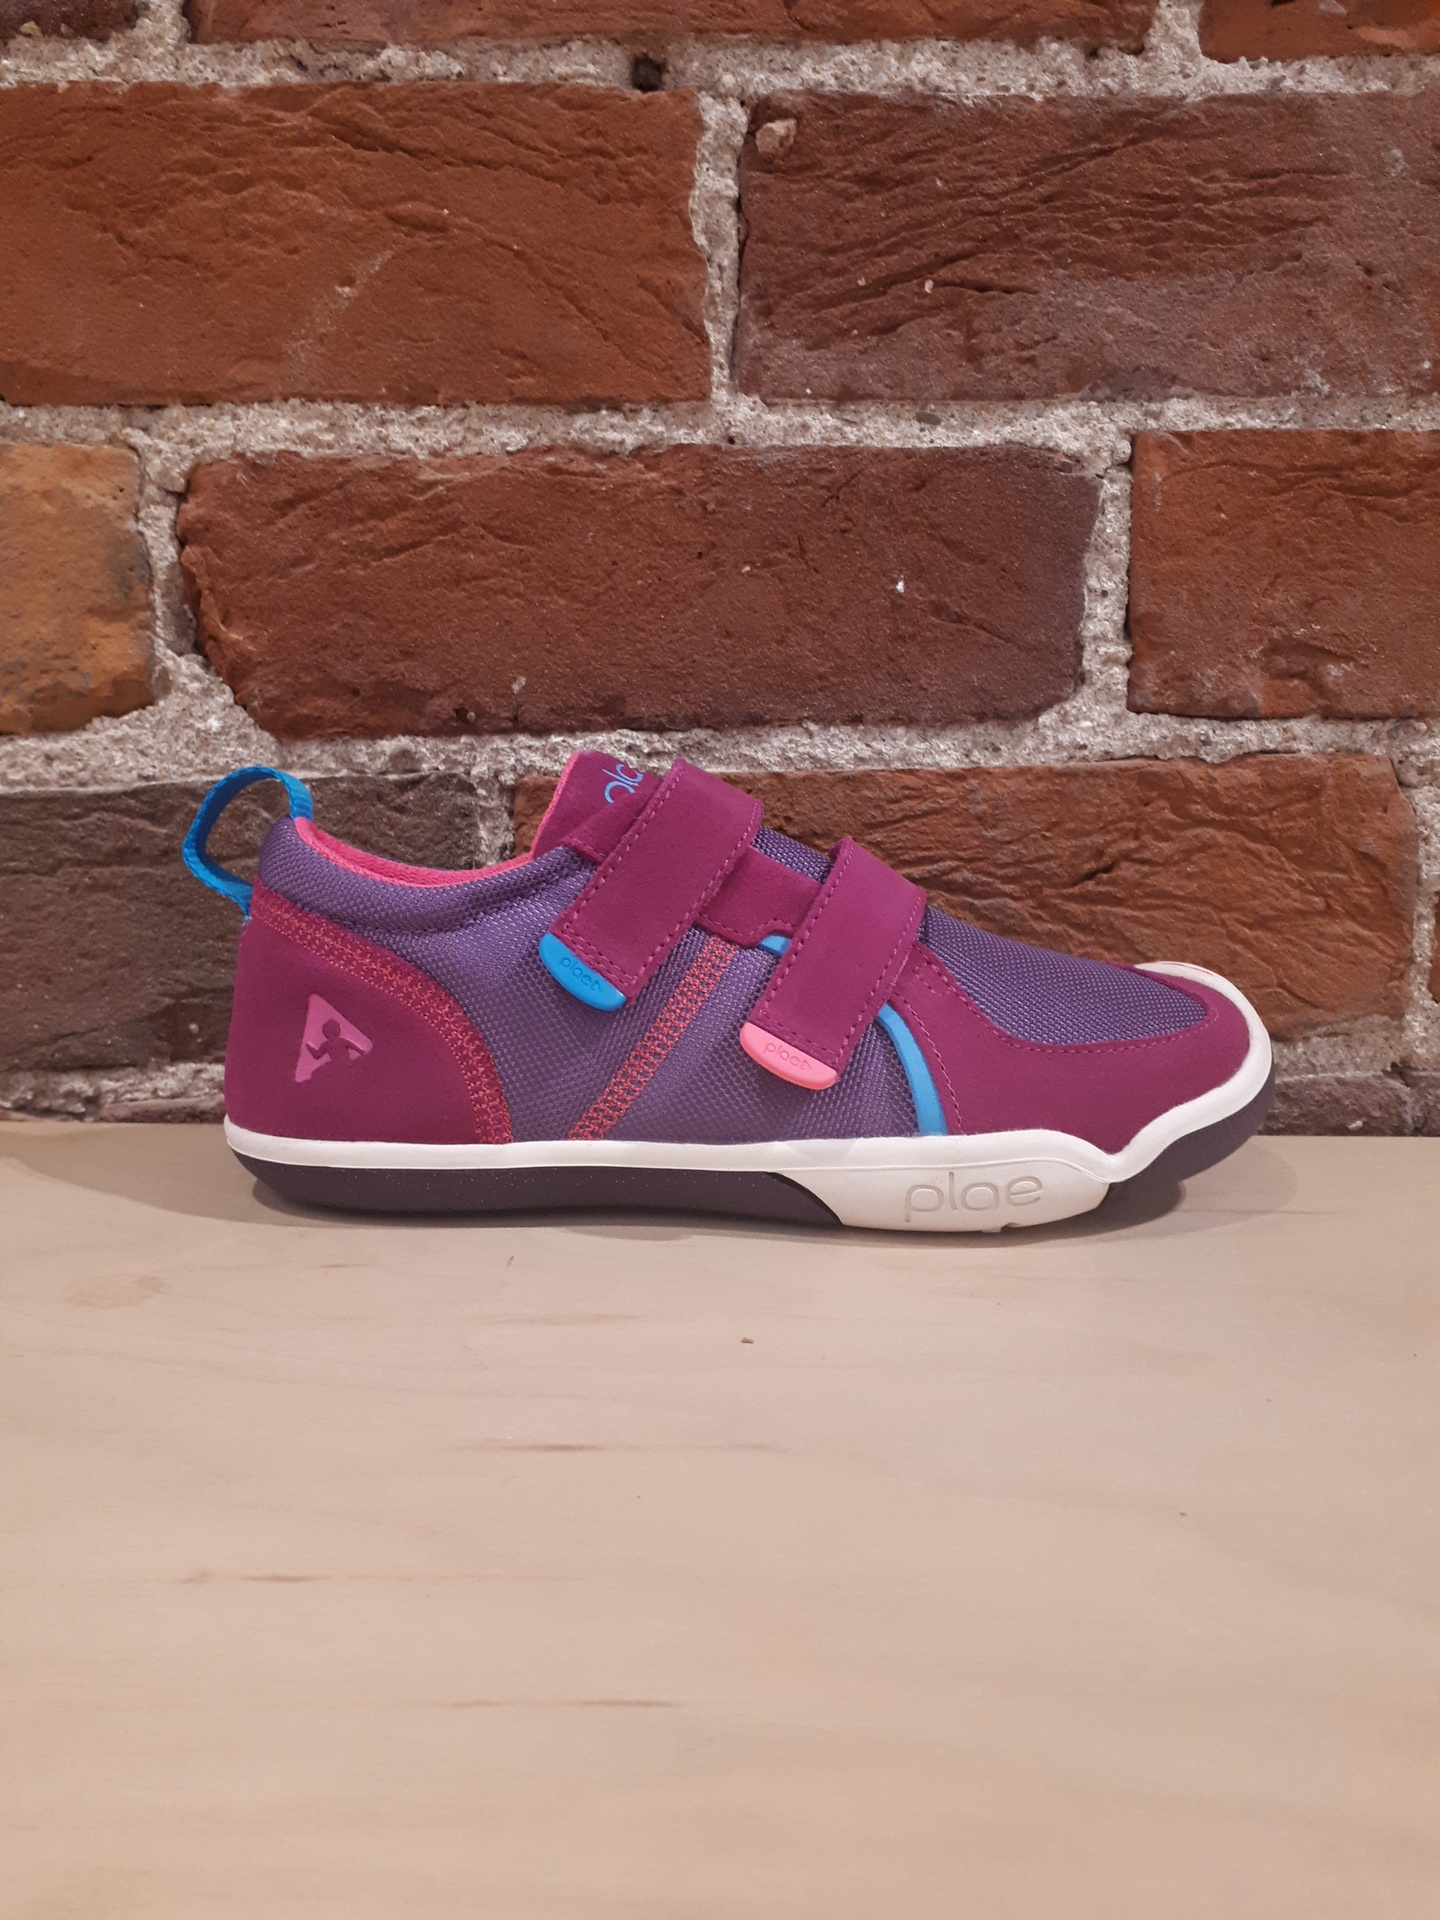 PLAE - TY IN FUCHSIA/PURPLE (2Y-3Y)